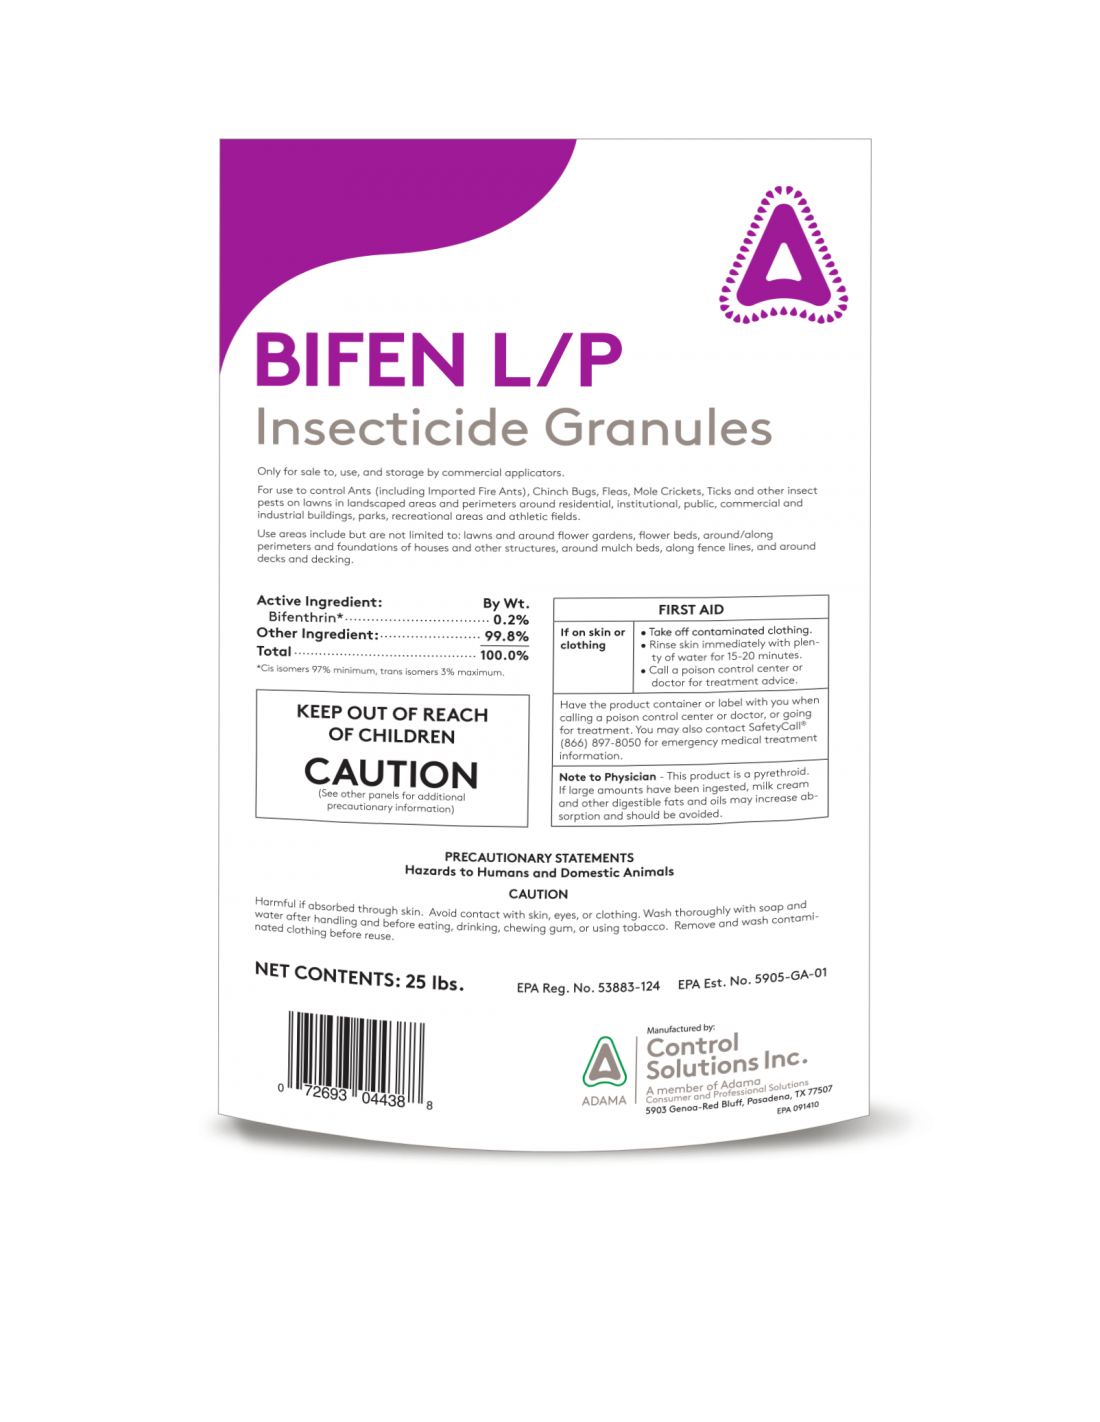 Does Bifen get rid of FLIES in your your yard. Flies are not mentioned as one of the pest it controls.